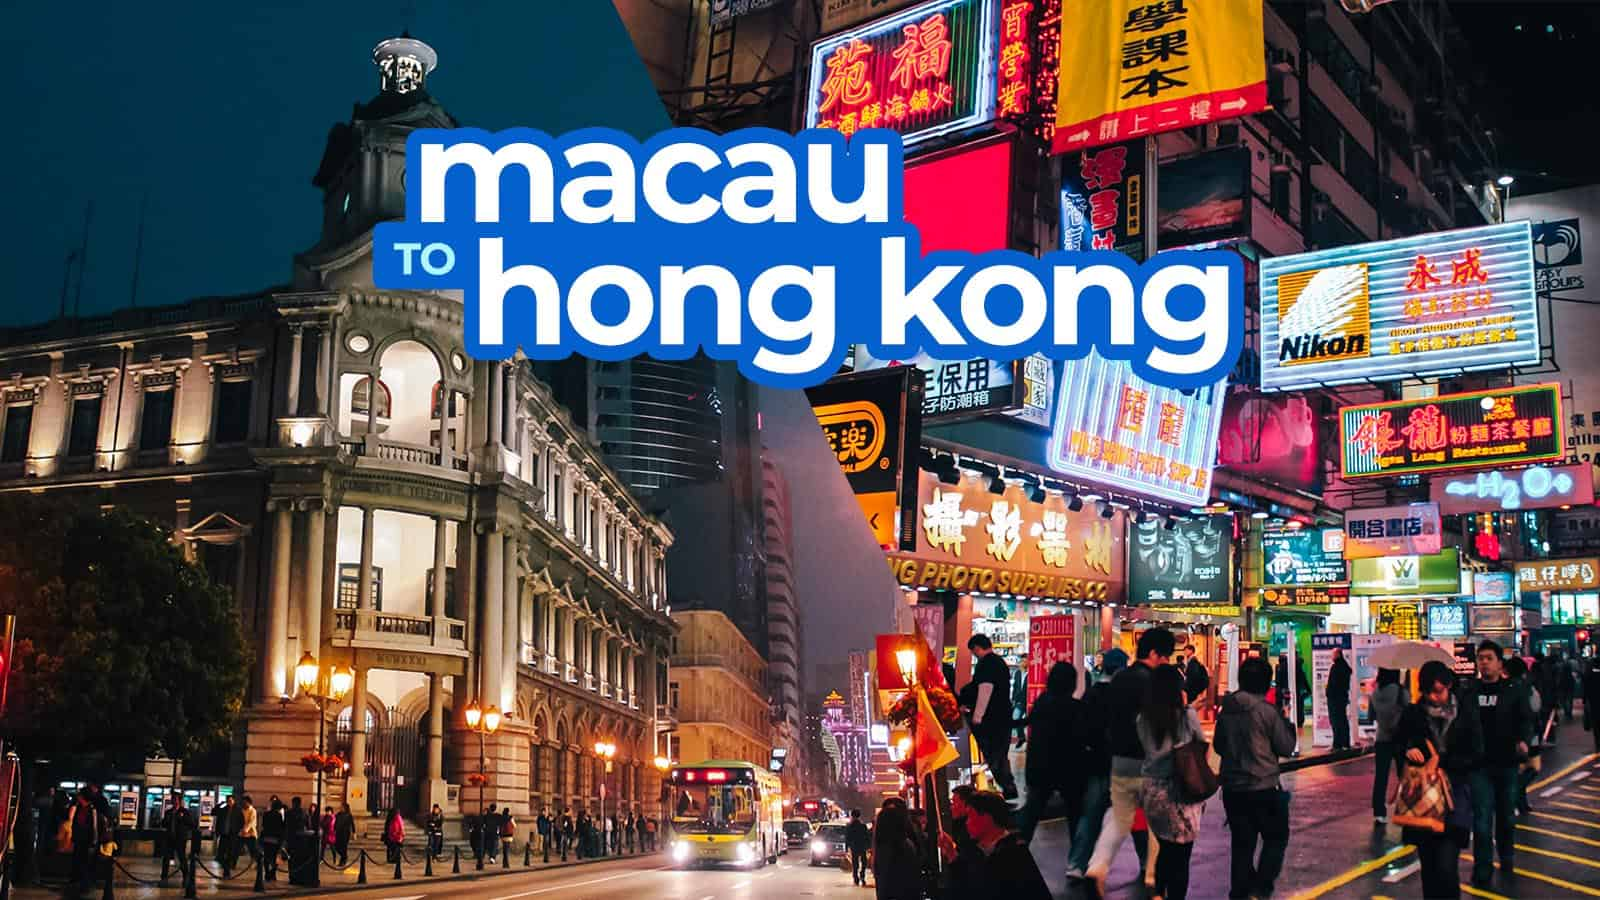 2019 MACAU TO HONG KONG BY FERRY or BUS (via Sea Bridge)